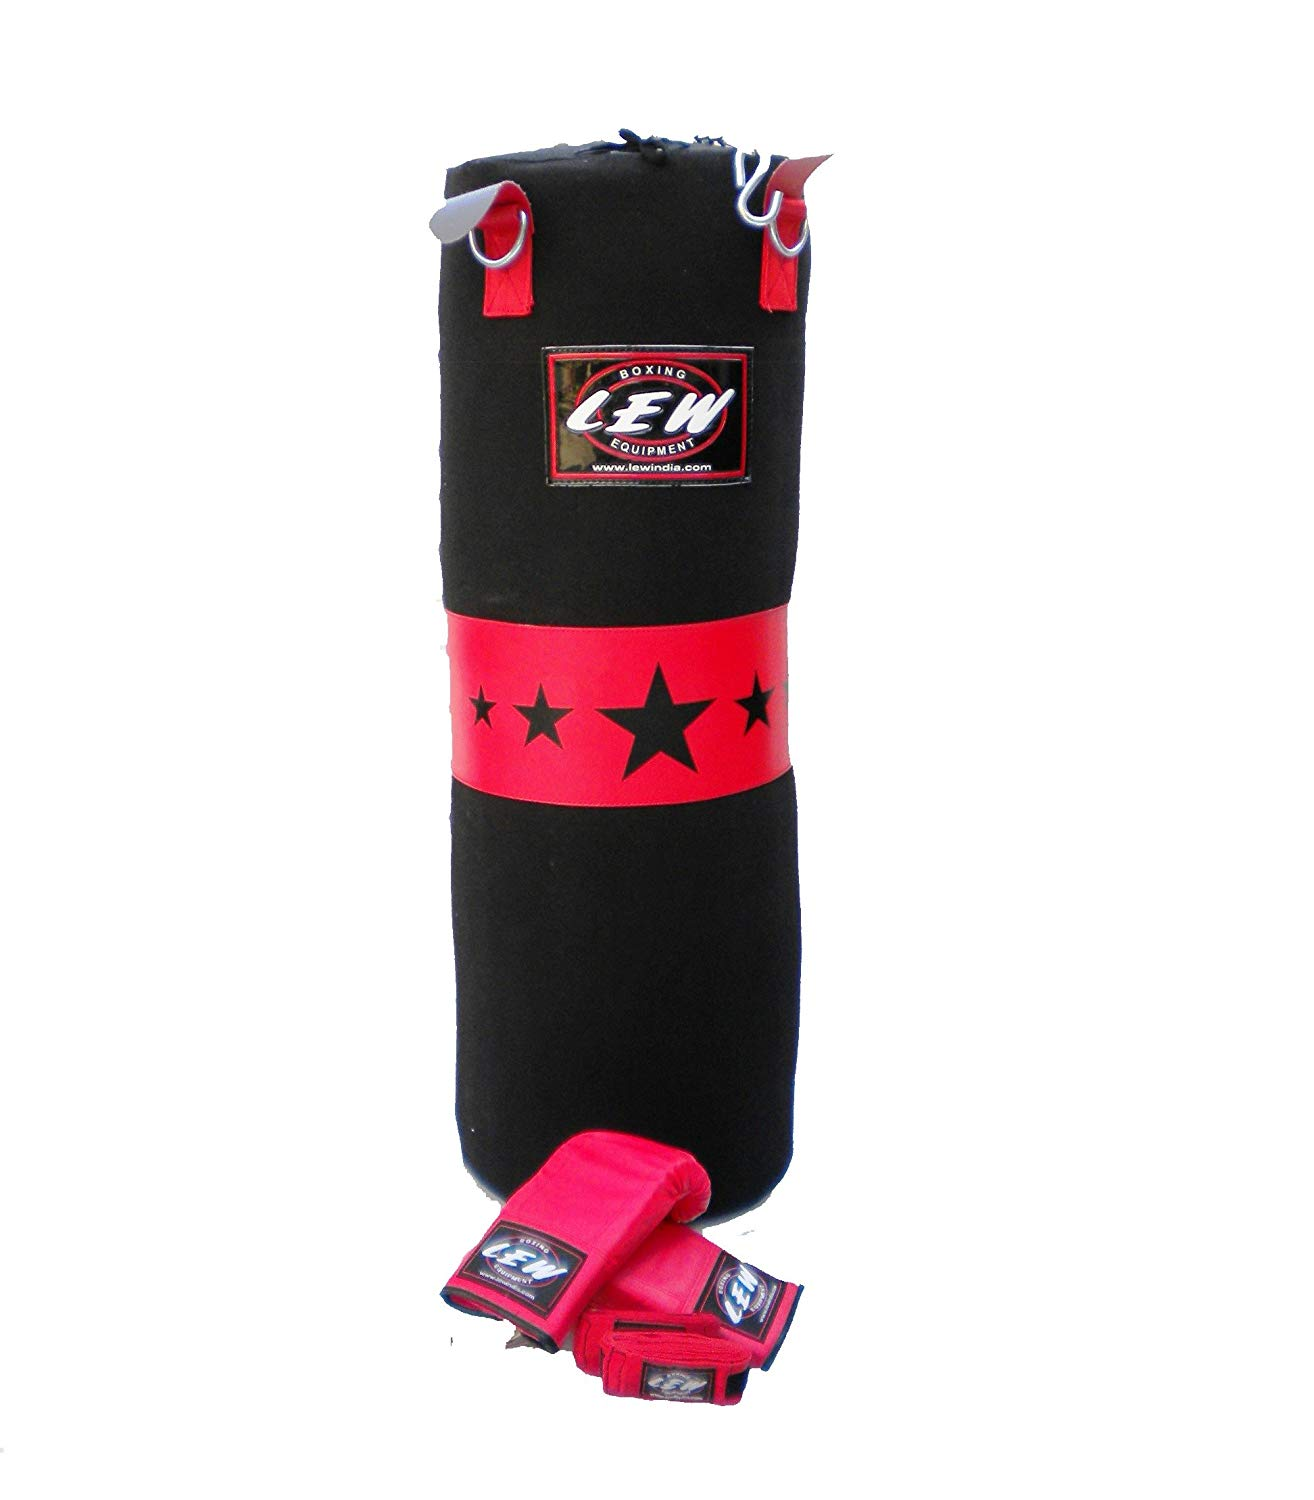 LEW-Canvas-36-Inches--Filled-Punching-Bag